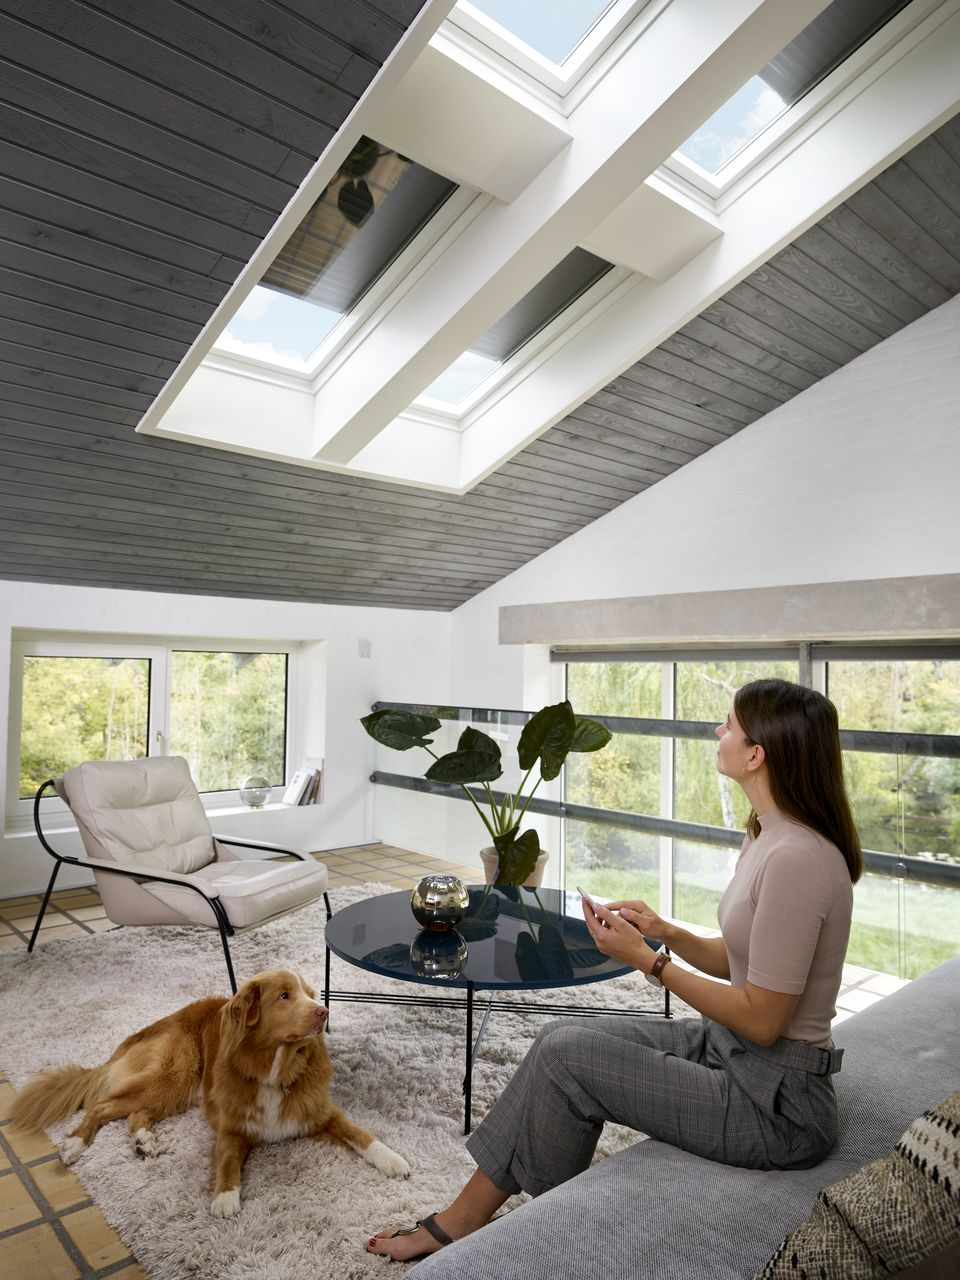 Velux Roof Windows Allow Plenty Of Natural Daylight In While